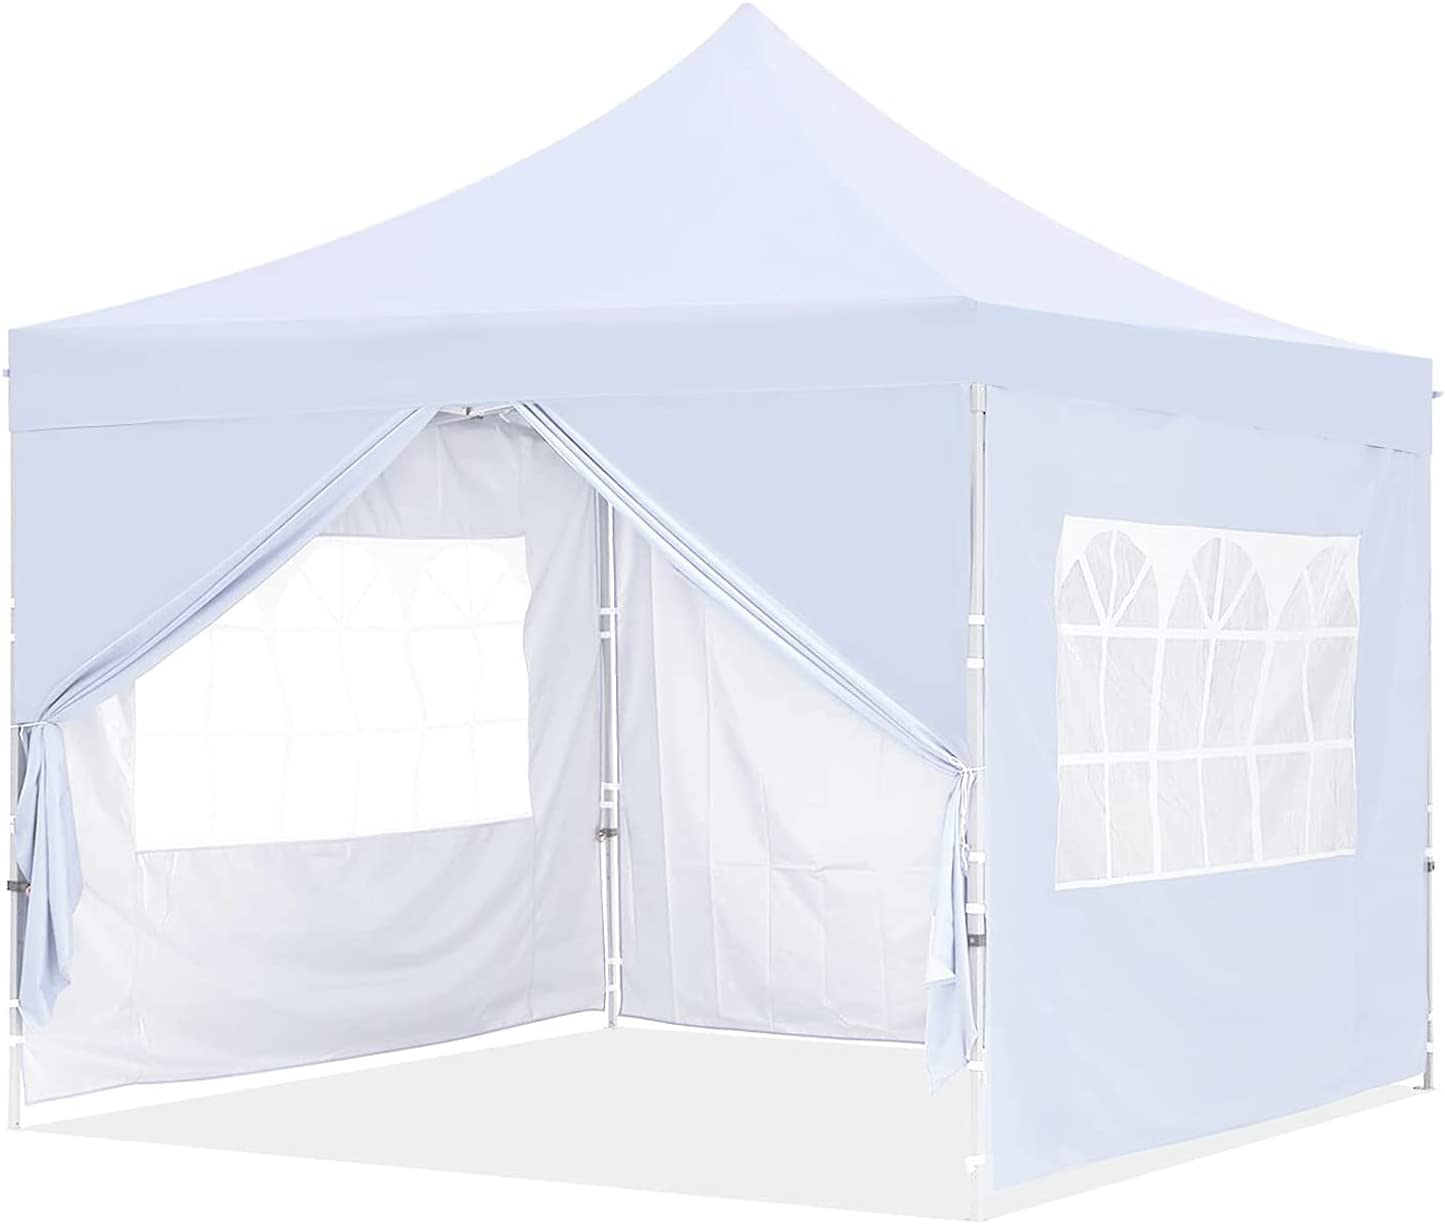 DOIT 10x10 Ft Outdoor Super sale period limited Pop Up Canopy Instant Tent Popular shop is the lowest price challenge Folding